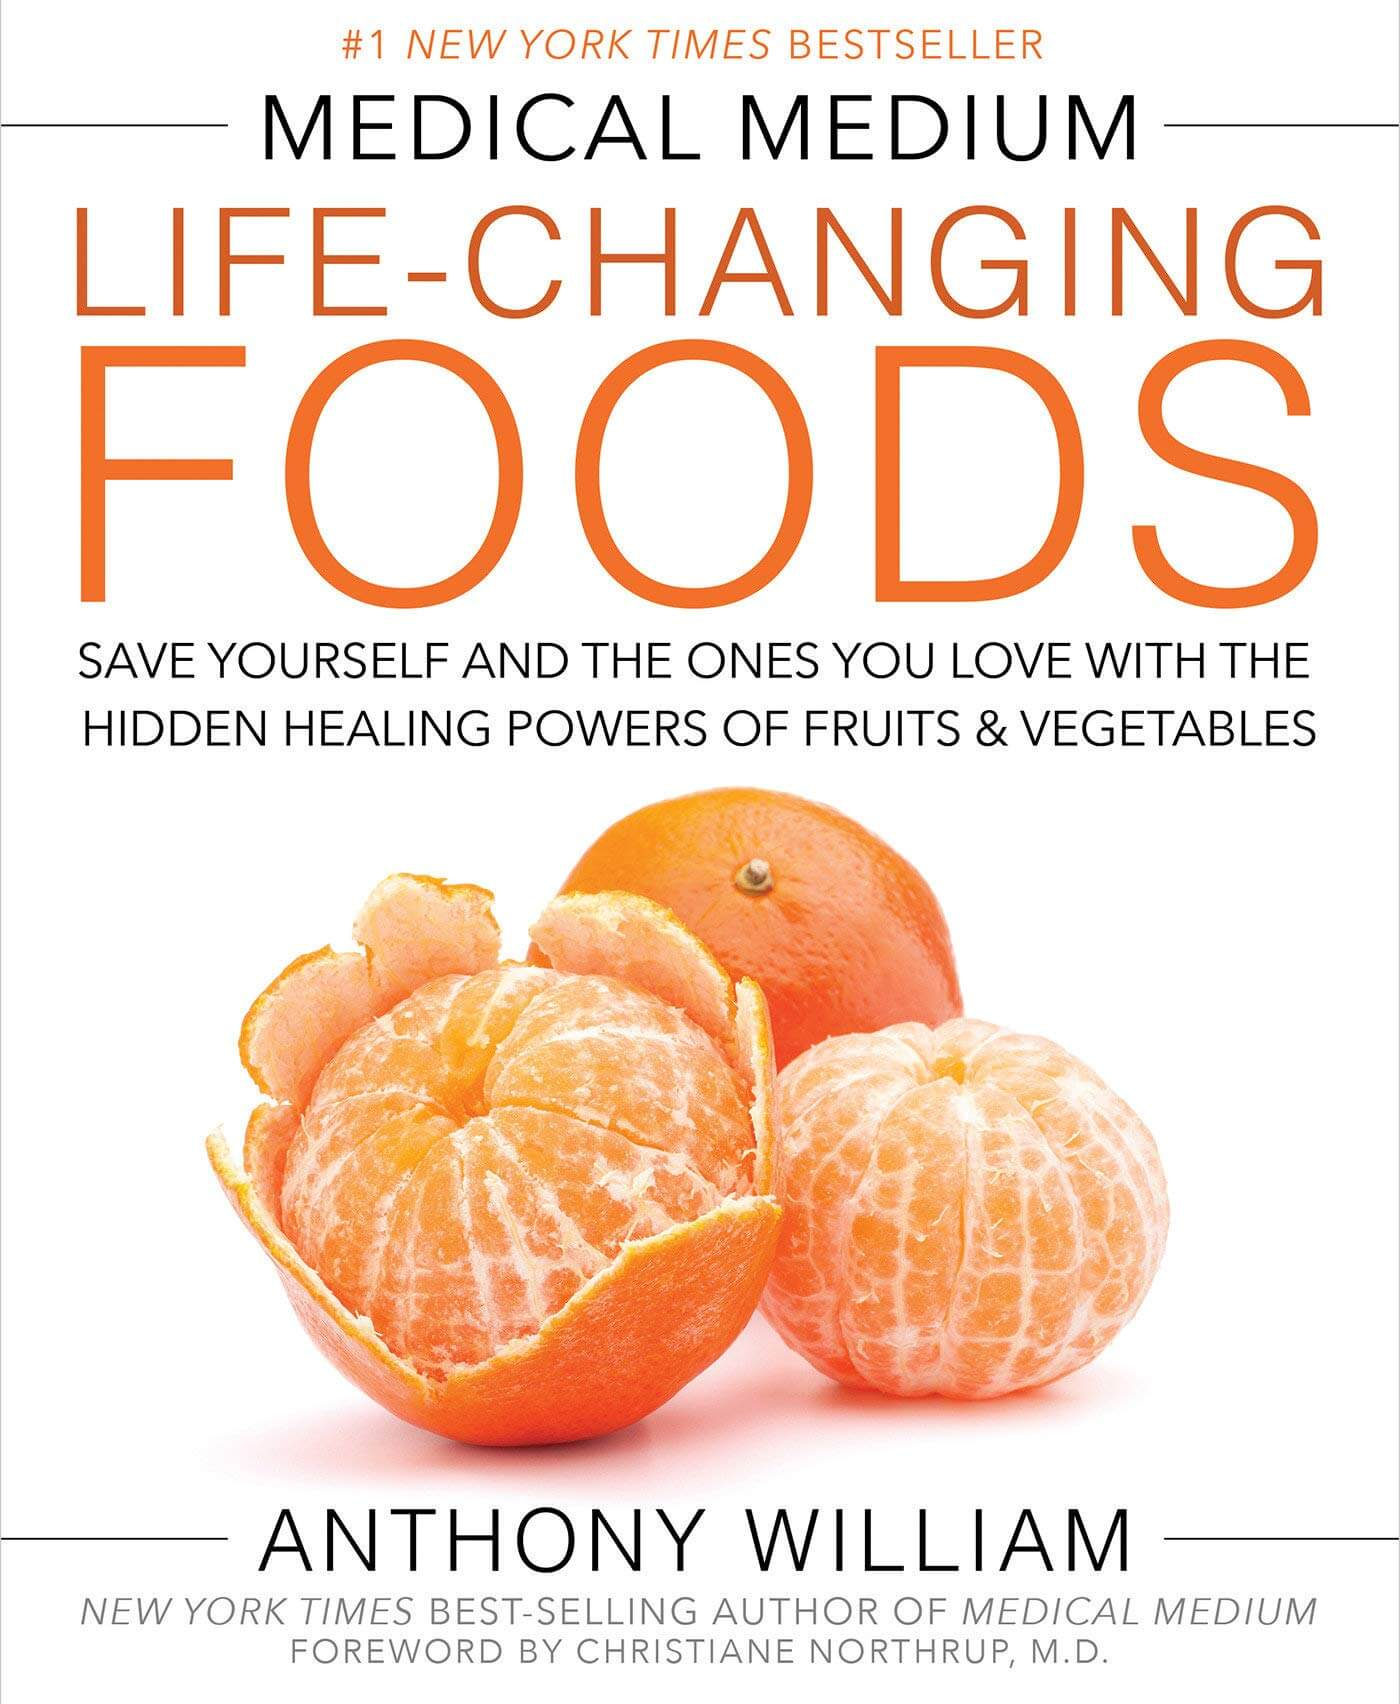 life-changing foods a book on how to start a healthy lifestyle through diet